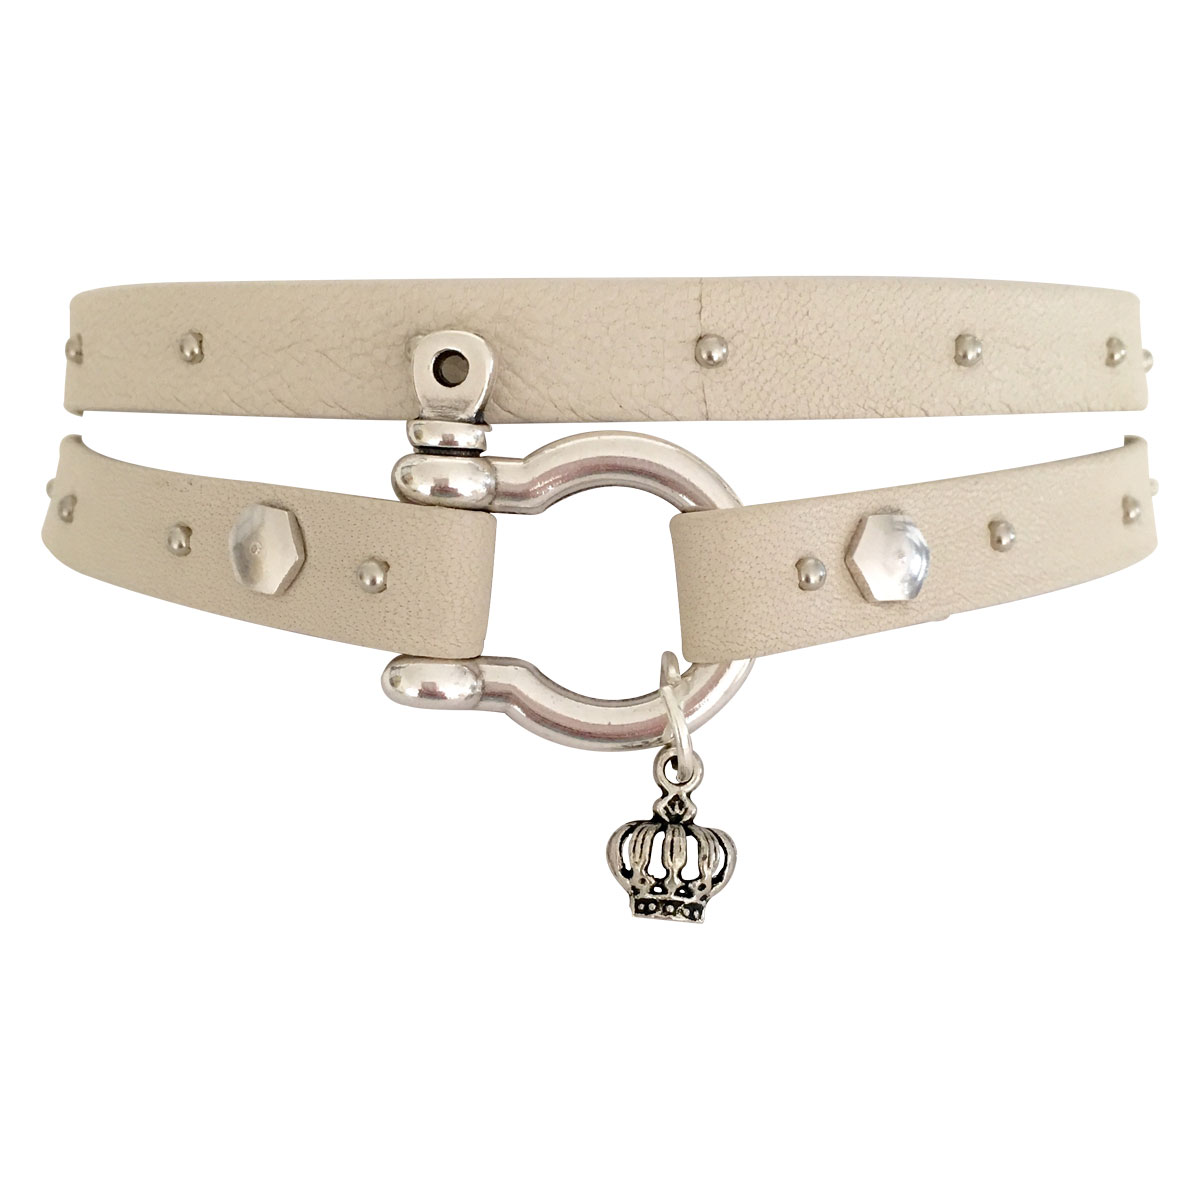 Nappa Leather Choker With Grommets